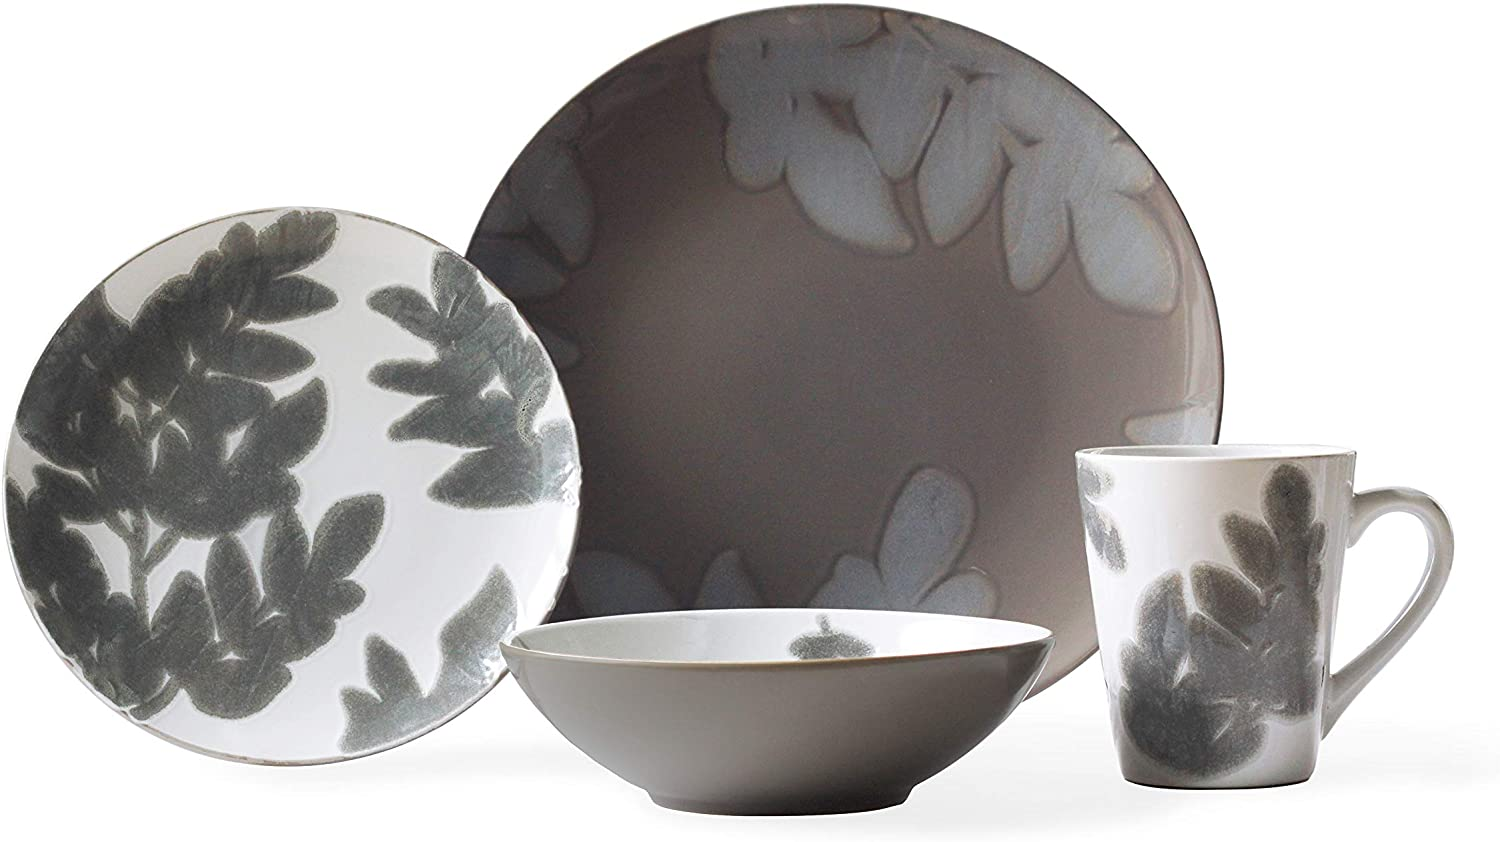 16-PIECE BLOSSOMING FLORAL CERAMIC DINNERWARE SET- DISHES, BOWLS, MUGS, SERVICE FOR 4 Vedure Grey